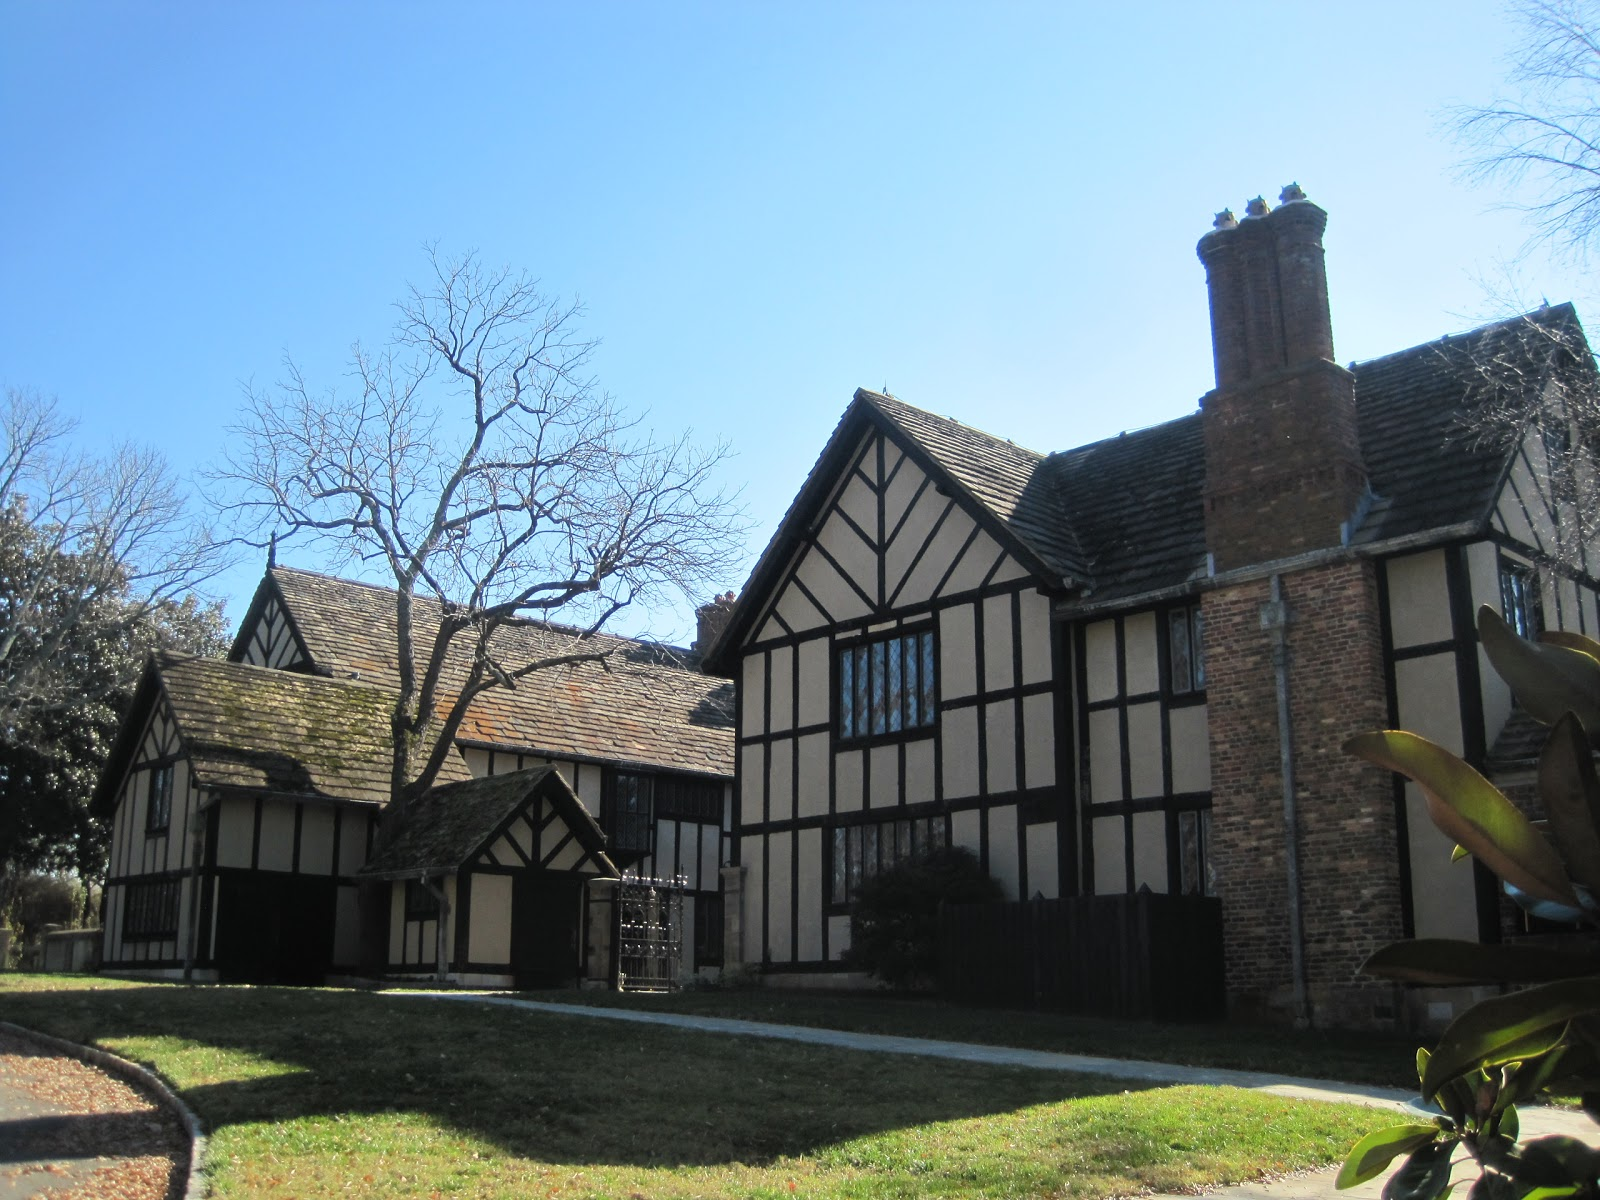 Agecroft Hall, Richmond | Harrison Architect Designs on post wwii homes, 17th century homes, ming dynasty homes, sixteenth century homes, 14th century homes, 11th century homes, middle ages homes, 12th century homes, 19th century homes, 18th century homes, 1850's homes, 10th century homes, nineteenth century homes, first century homes, 2nd century homes, seventies homes, 5th century homes, europe homes, 16 century homes, 21th century homes,